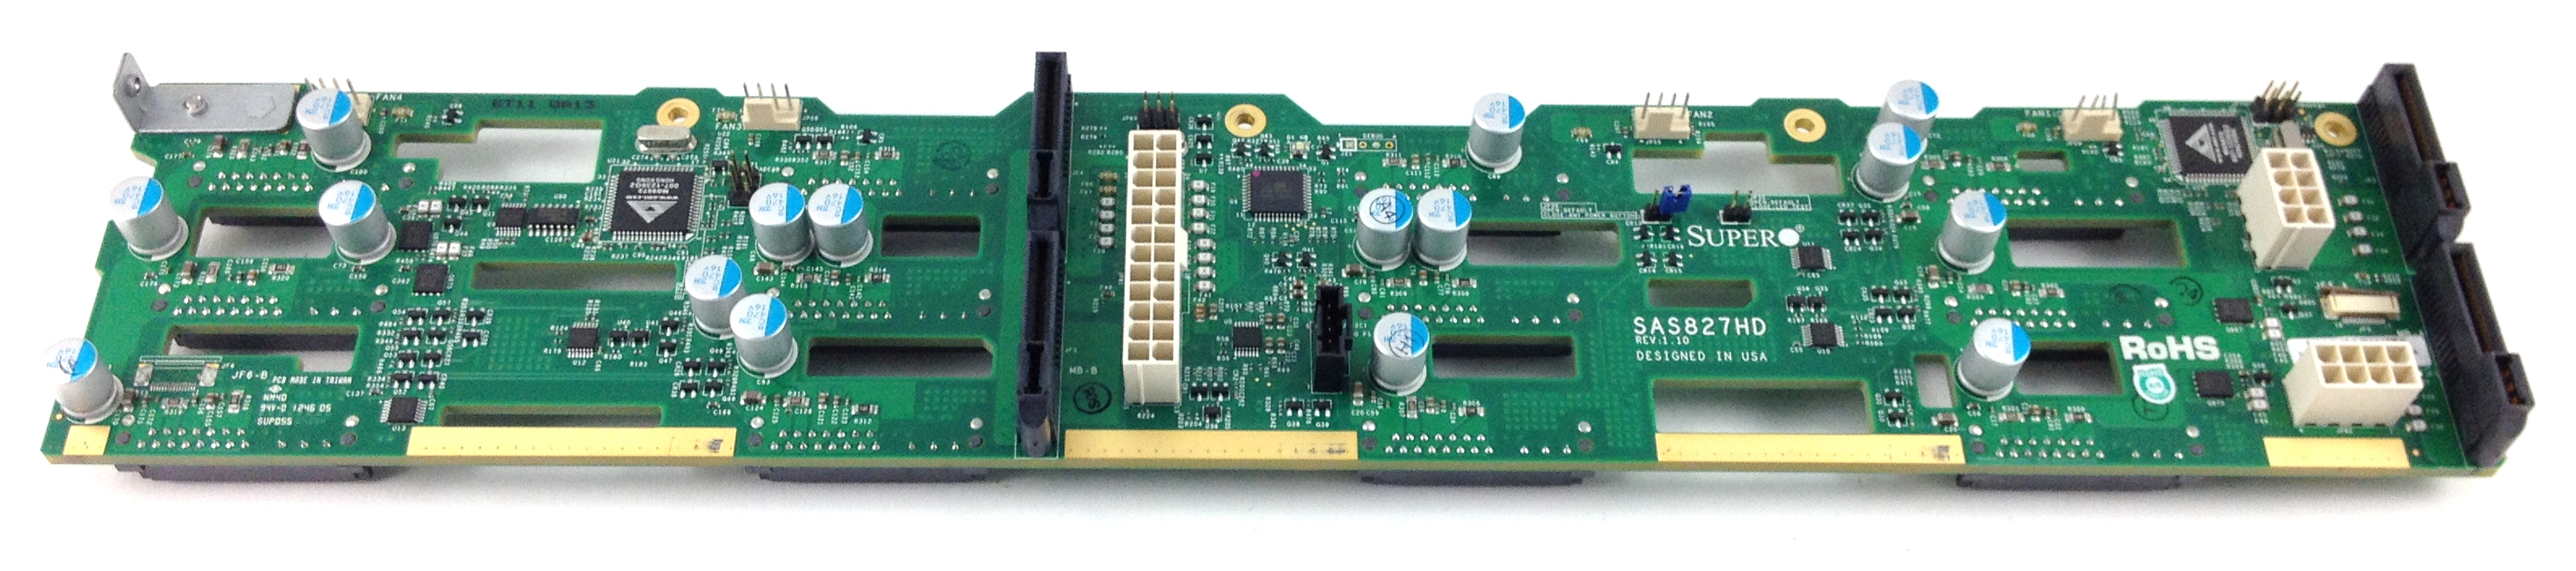 Supermicro 12,Bay 3.5' SAS SATA Hard Drive Backplane (SAS827HD)